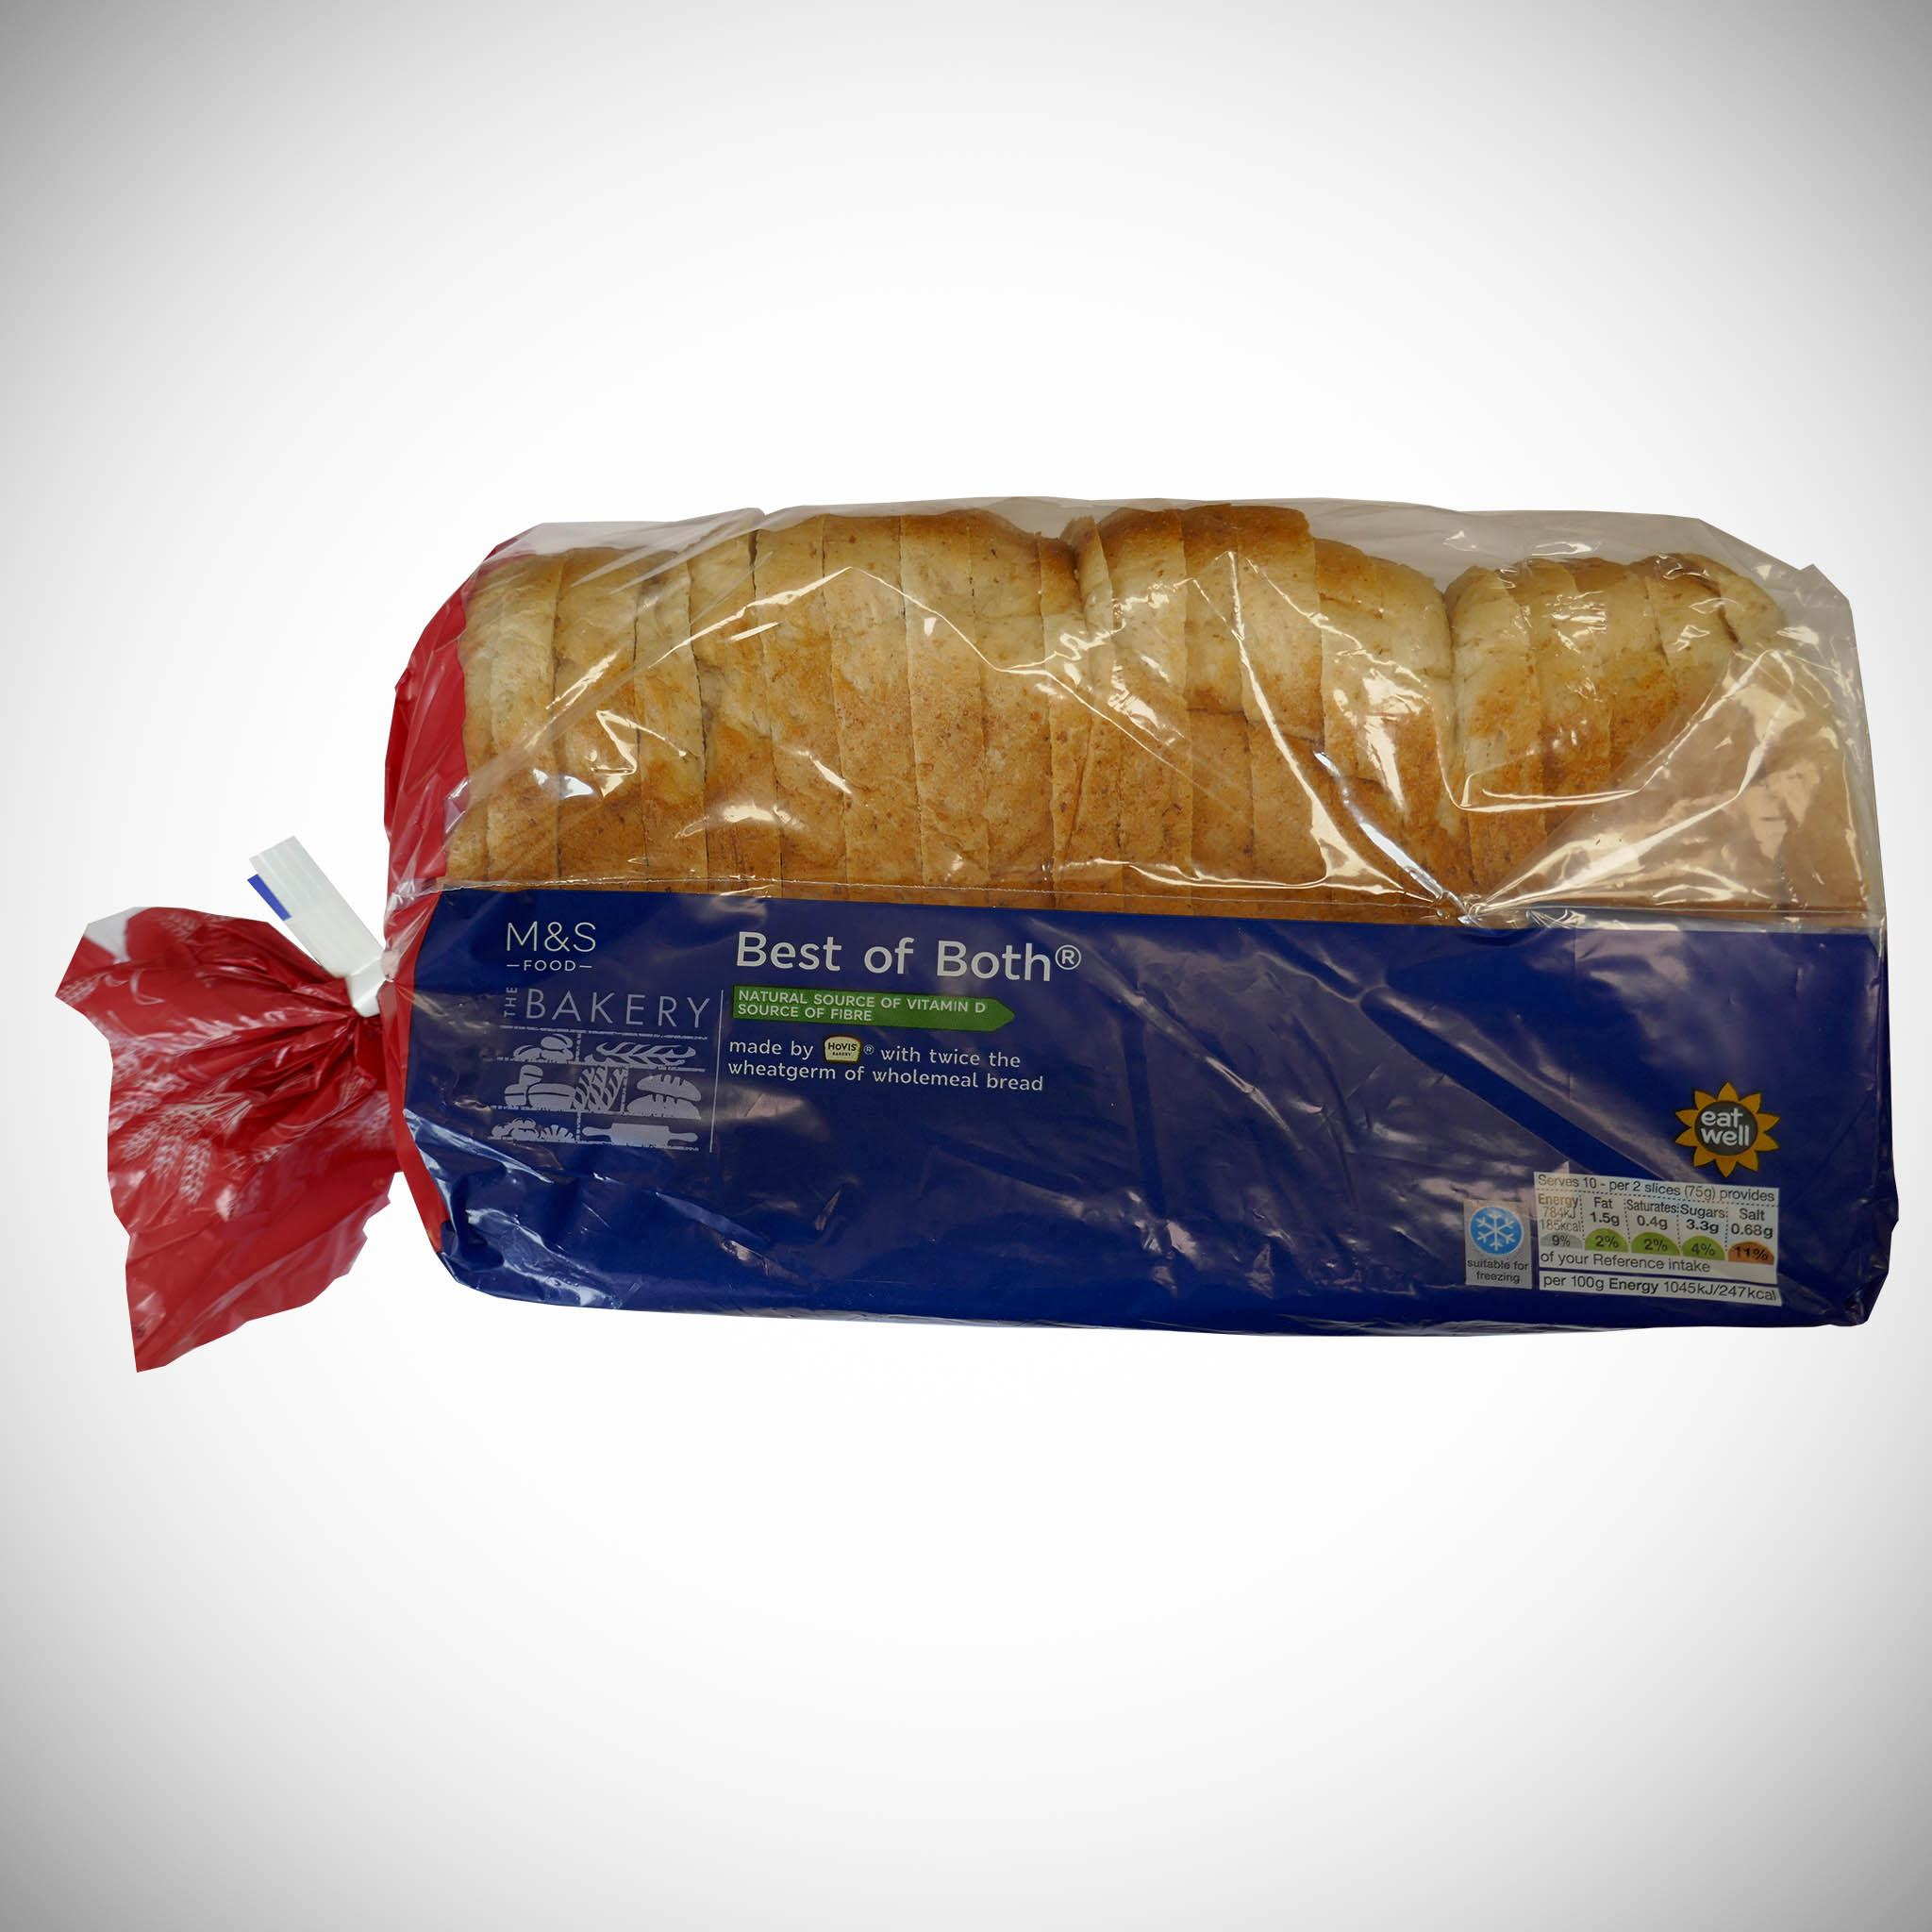 Best of Both Medium Sliced 750g